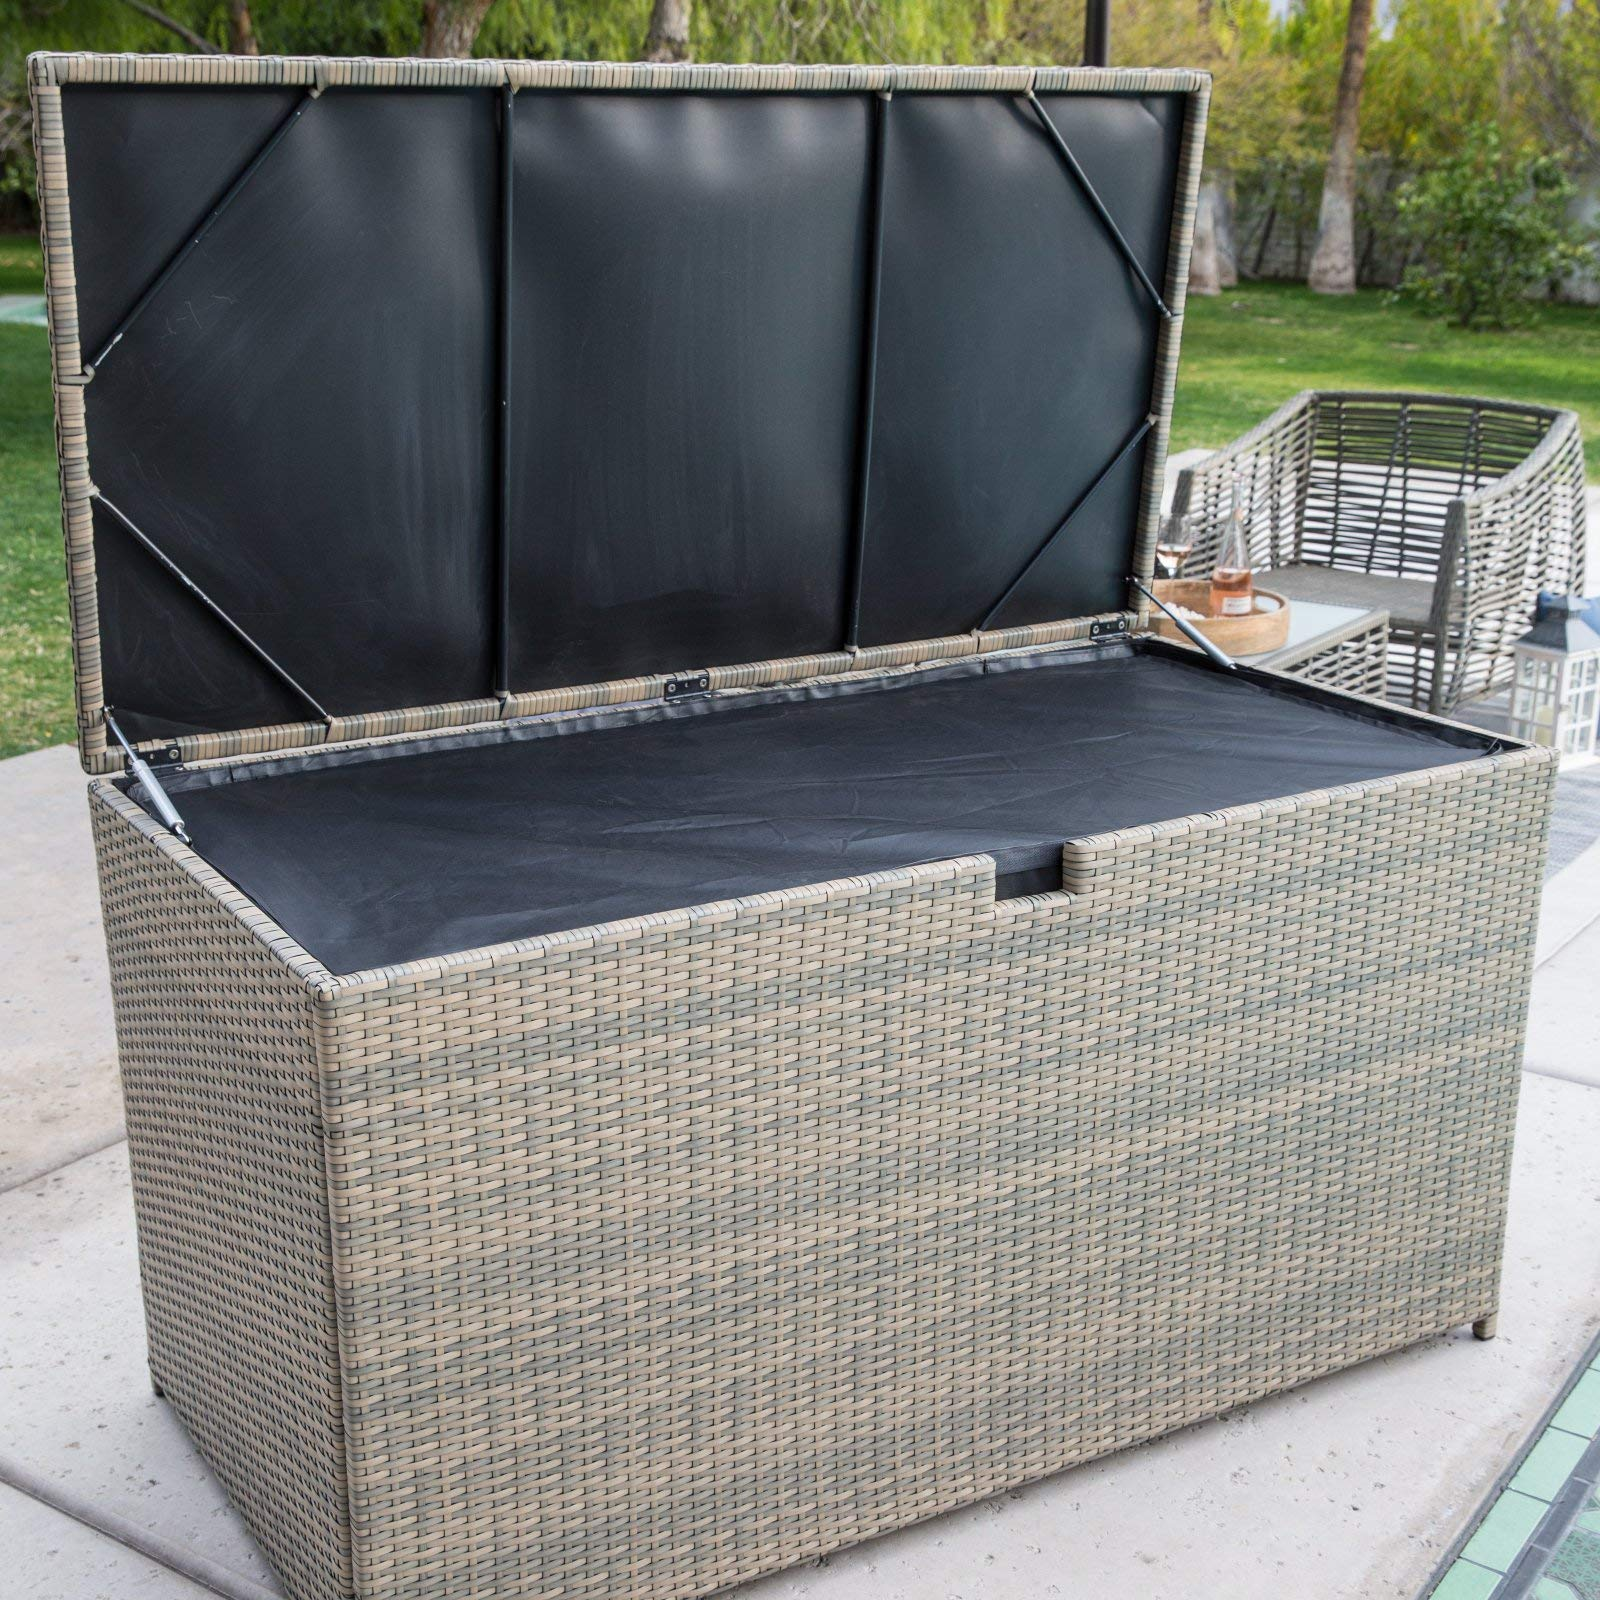 190 Gallon Tonal Brown Gray Resin Wicker Deck Box with Protective Liner Patio Storage for Outdoor Living